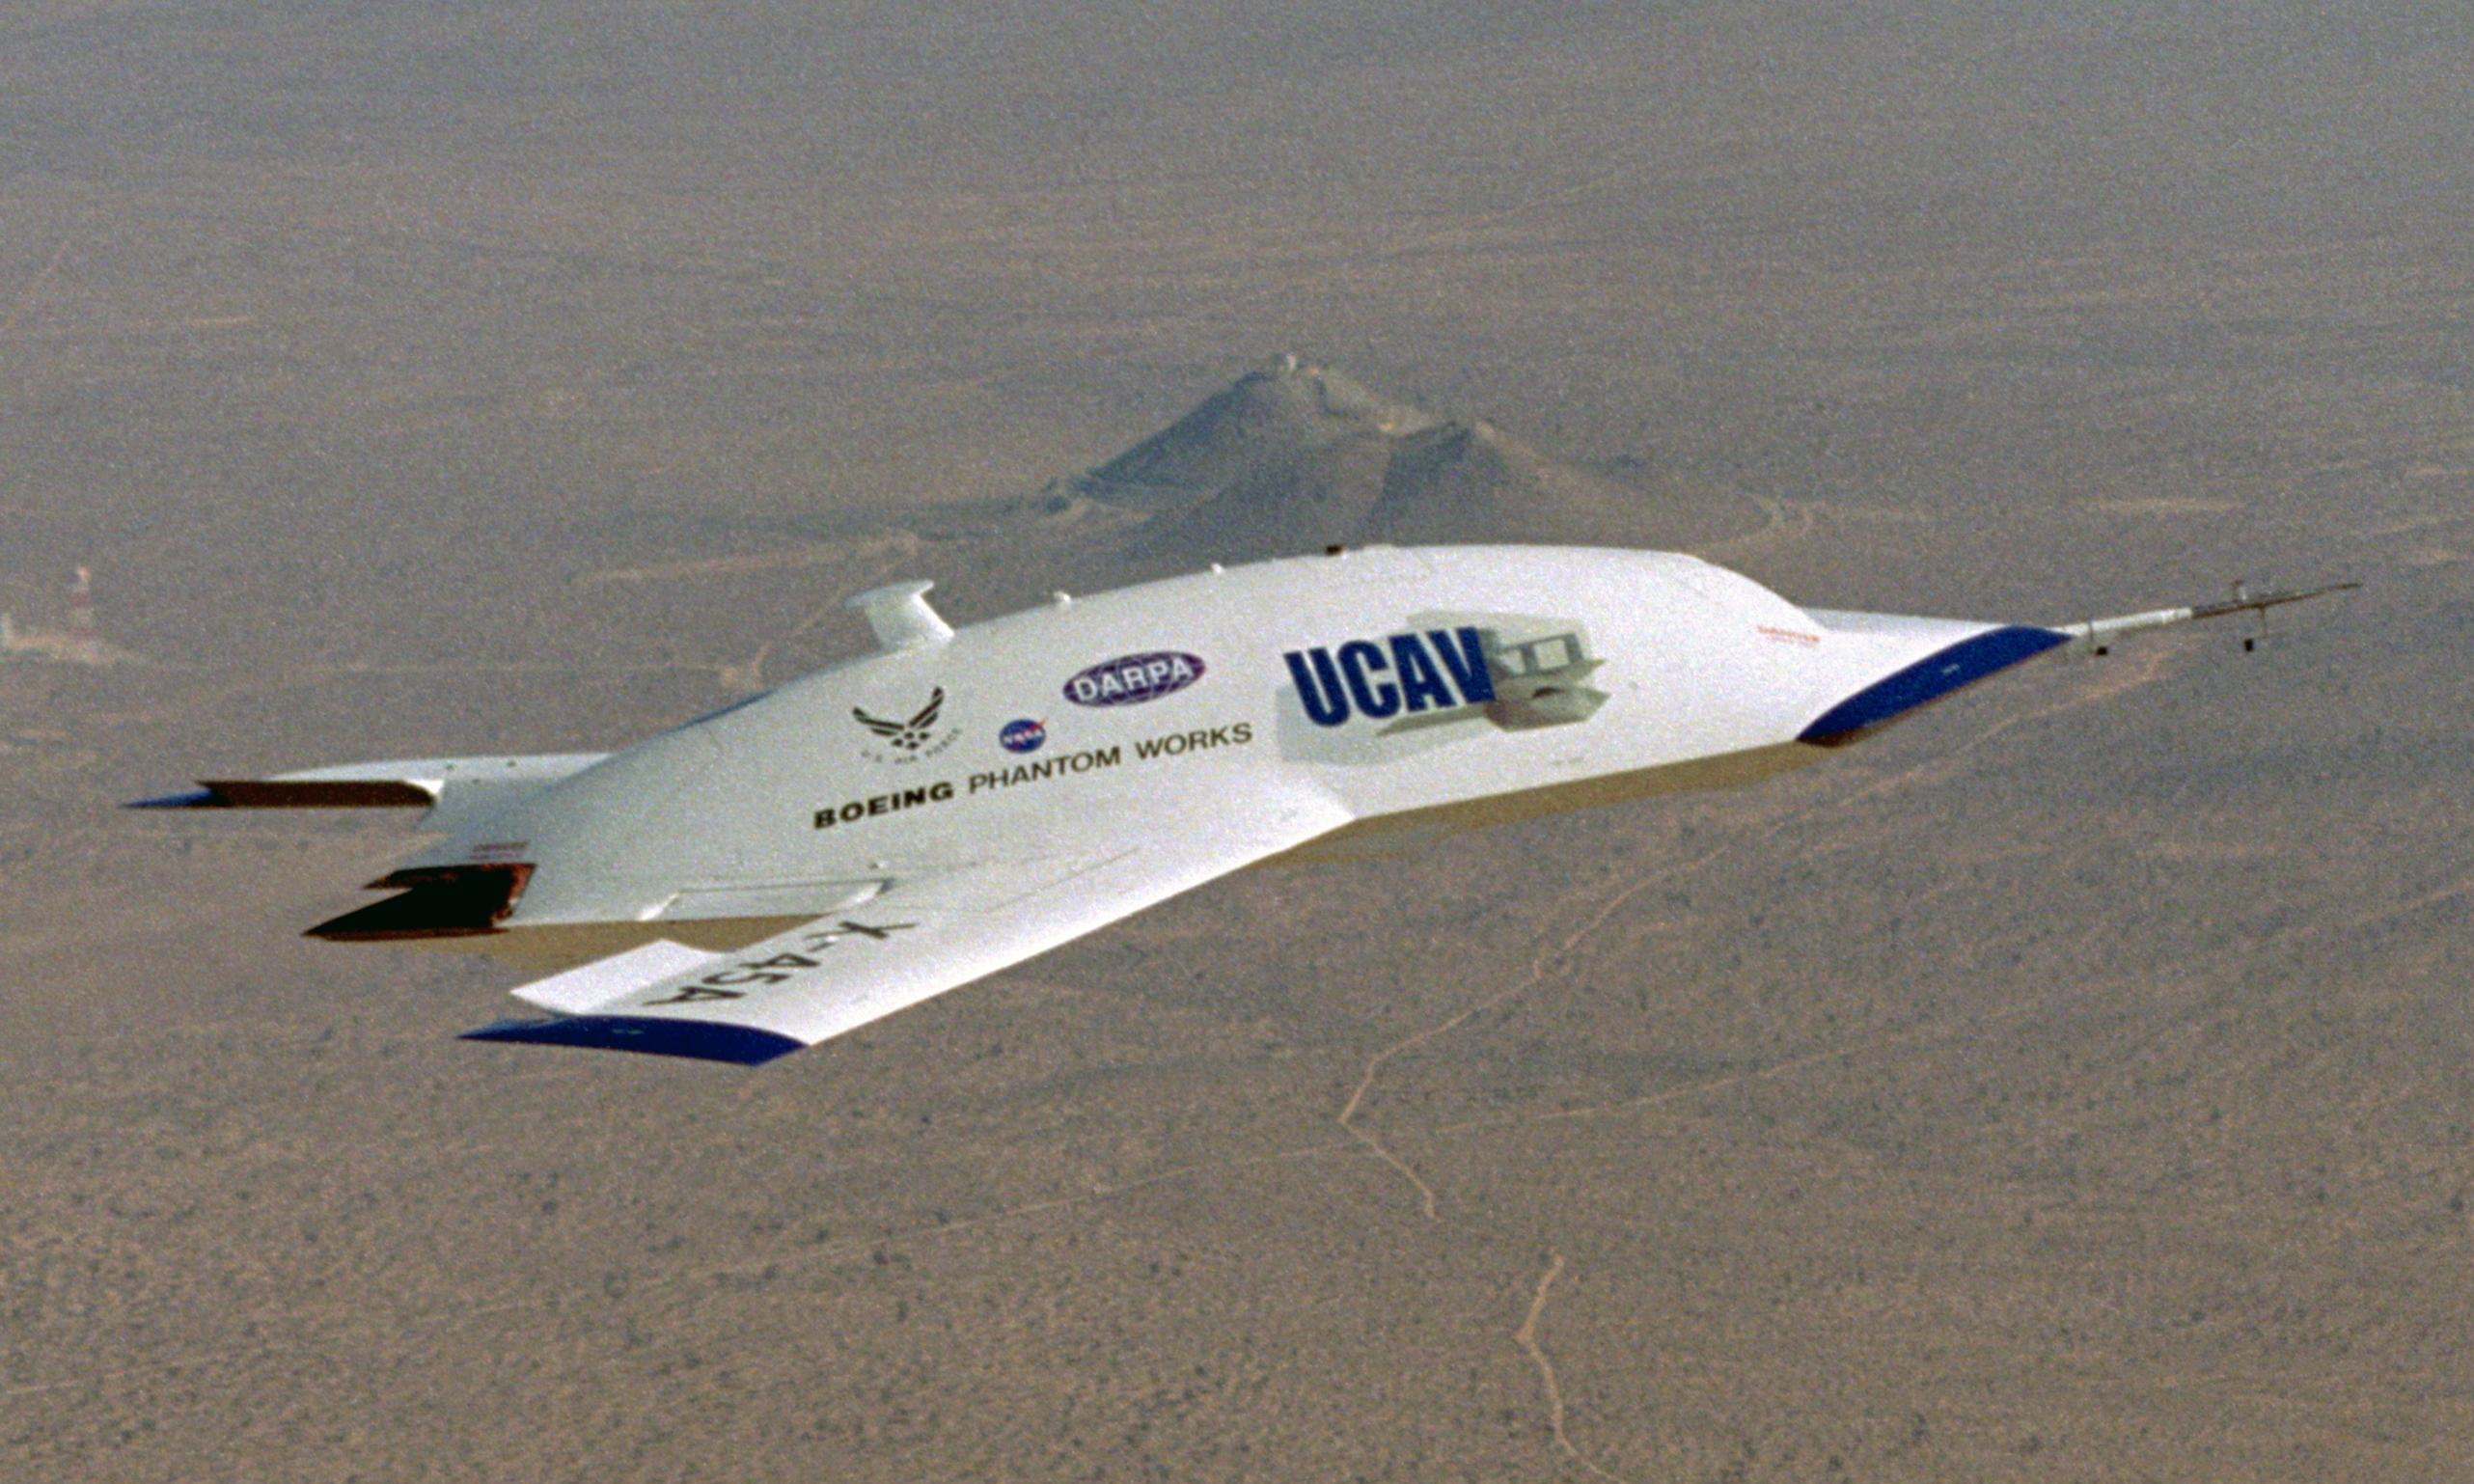 drone technology wiki with File Boeing X 45a Ucav on D0 9E D0 B1 D0 B0 D0 BC D0 B0   D0 91 D0 B0 D1 80 D0 B0 D0 BA likewise Weyland Yutani in addition Raytheon Targeting Sensor besides Nai Ares  puters as well Scarface.